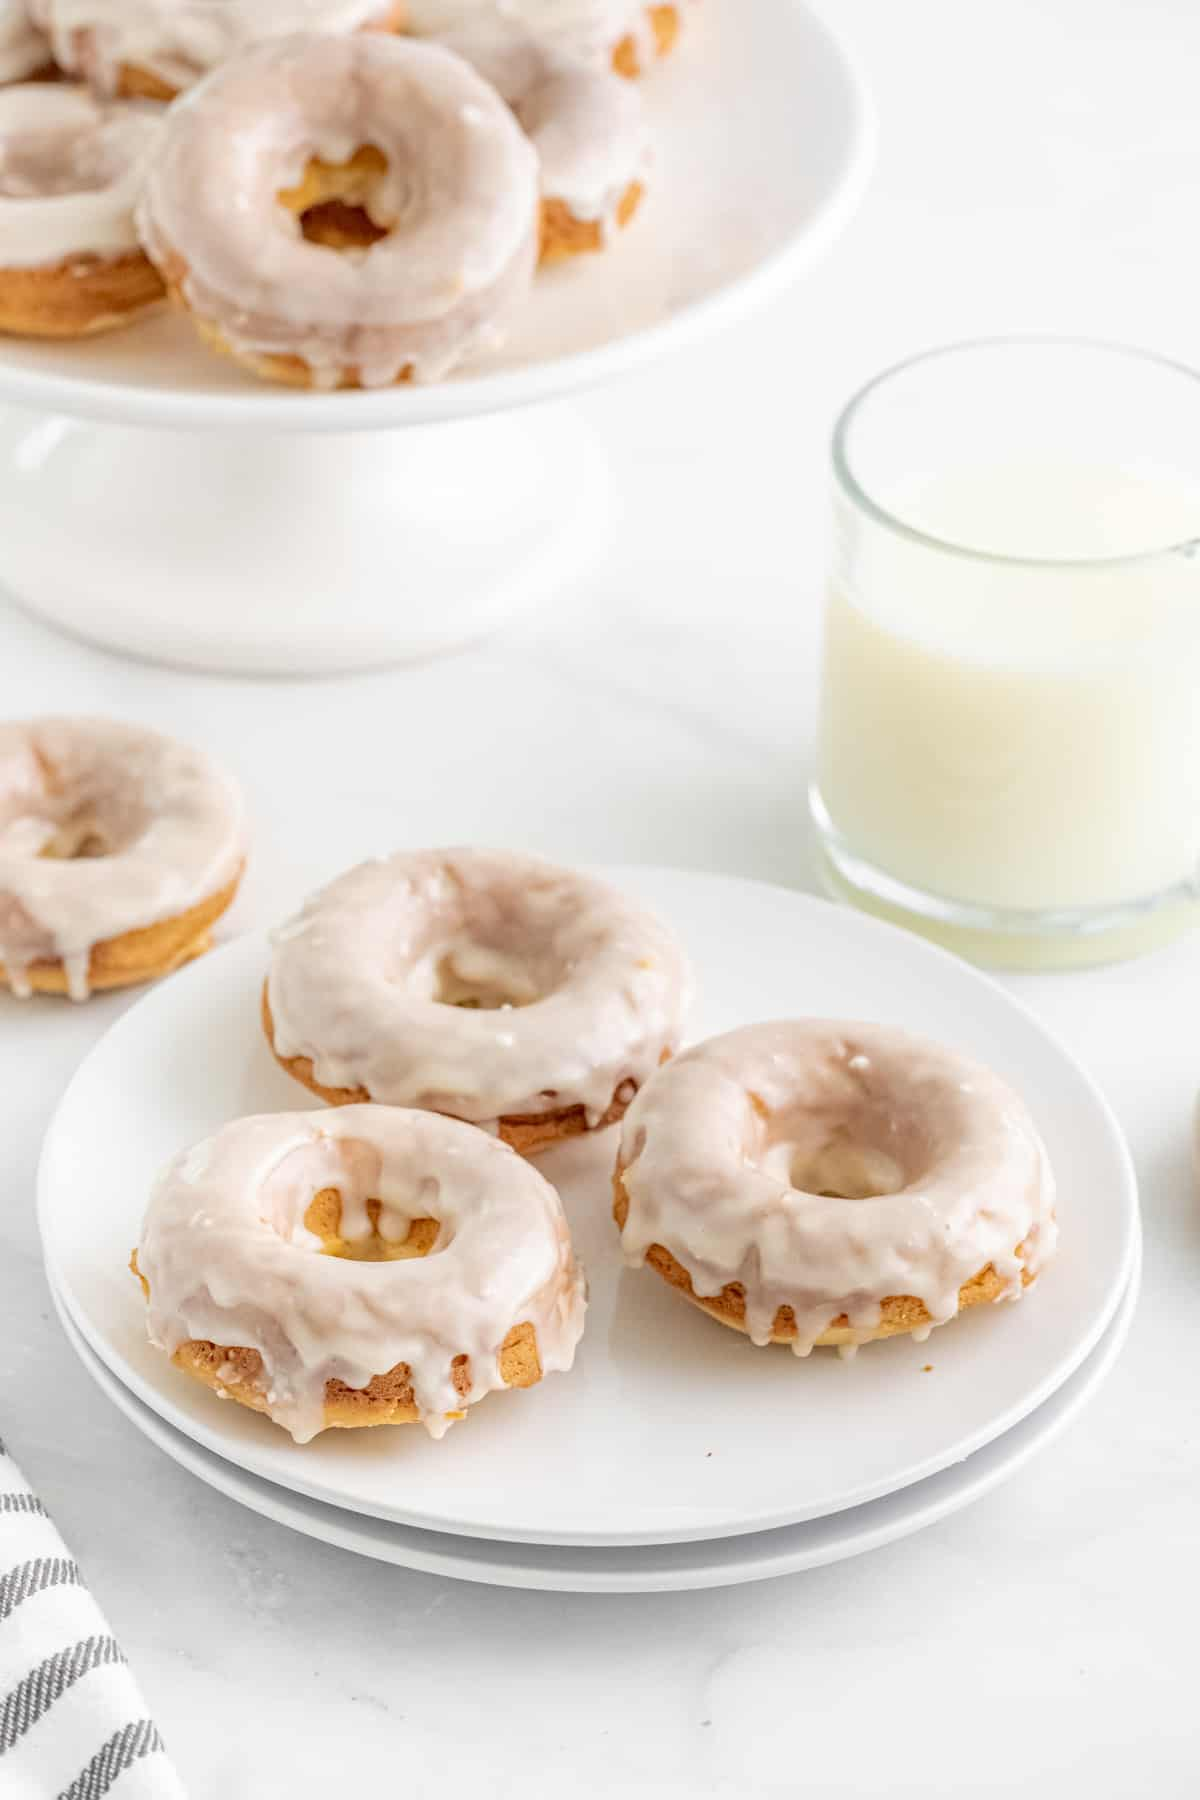 Three Baked Donuts on white plate with more on cake stand in background